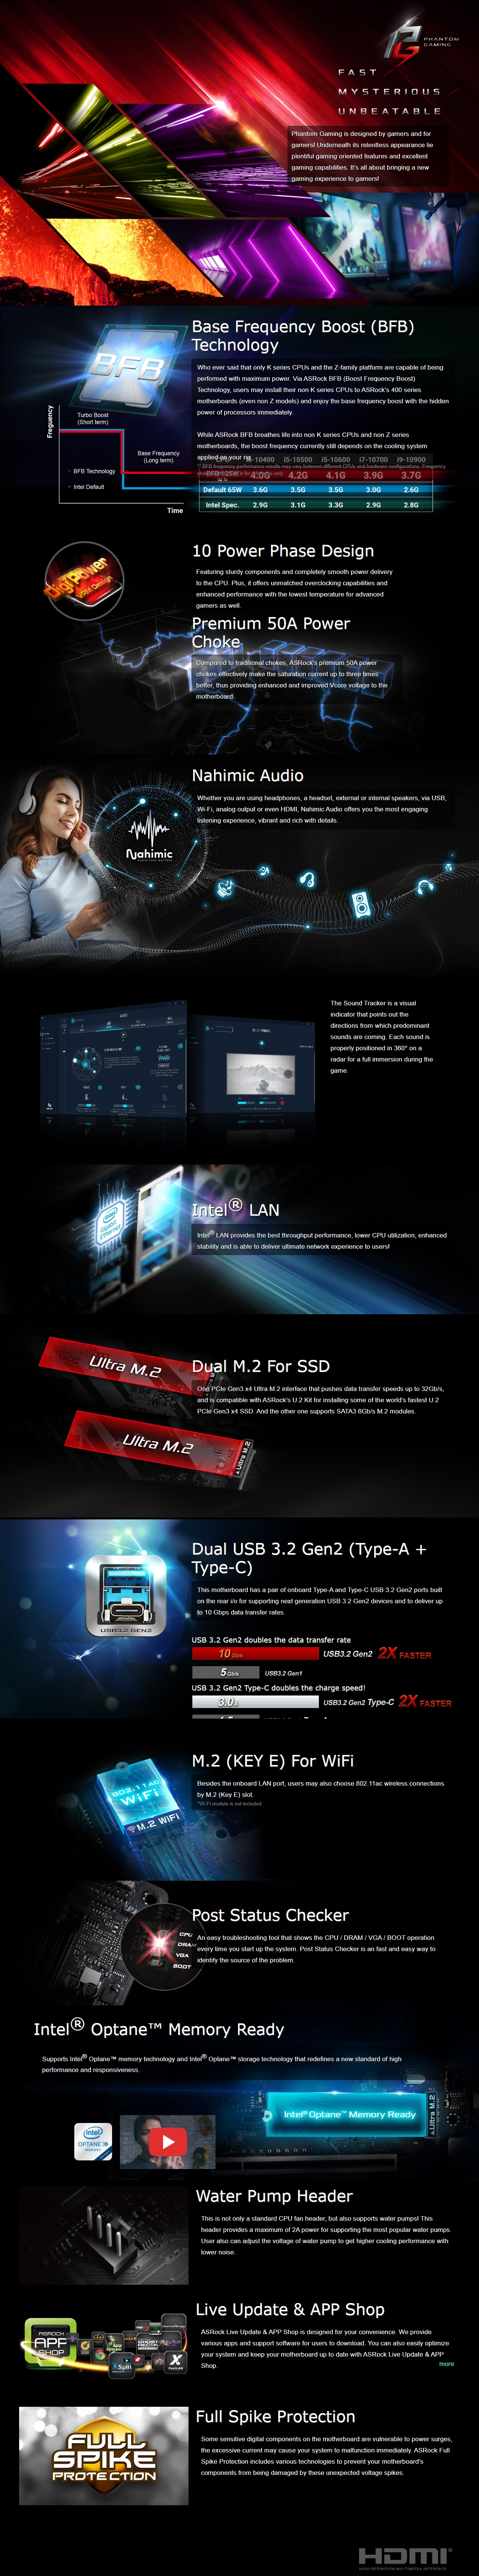 A large marketing image providing additional information about the product ASRock H470 Phantom Gaming 4 LGA1200 ATX Desktop Motherboard - Additional alt info not provided